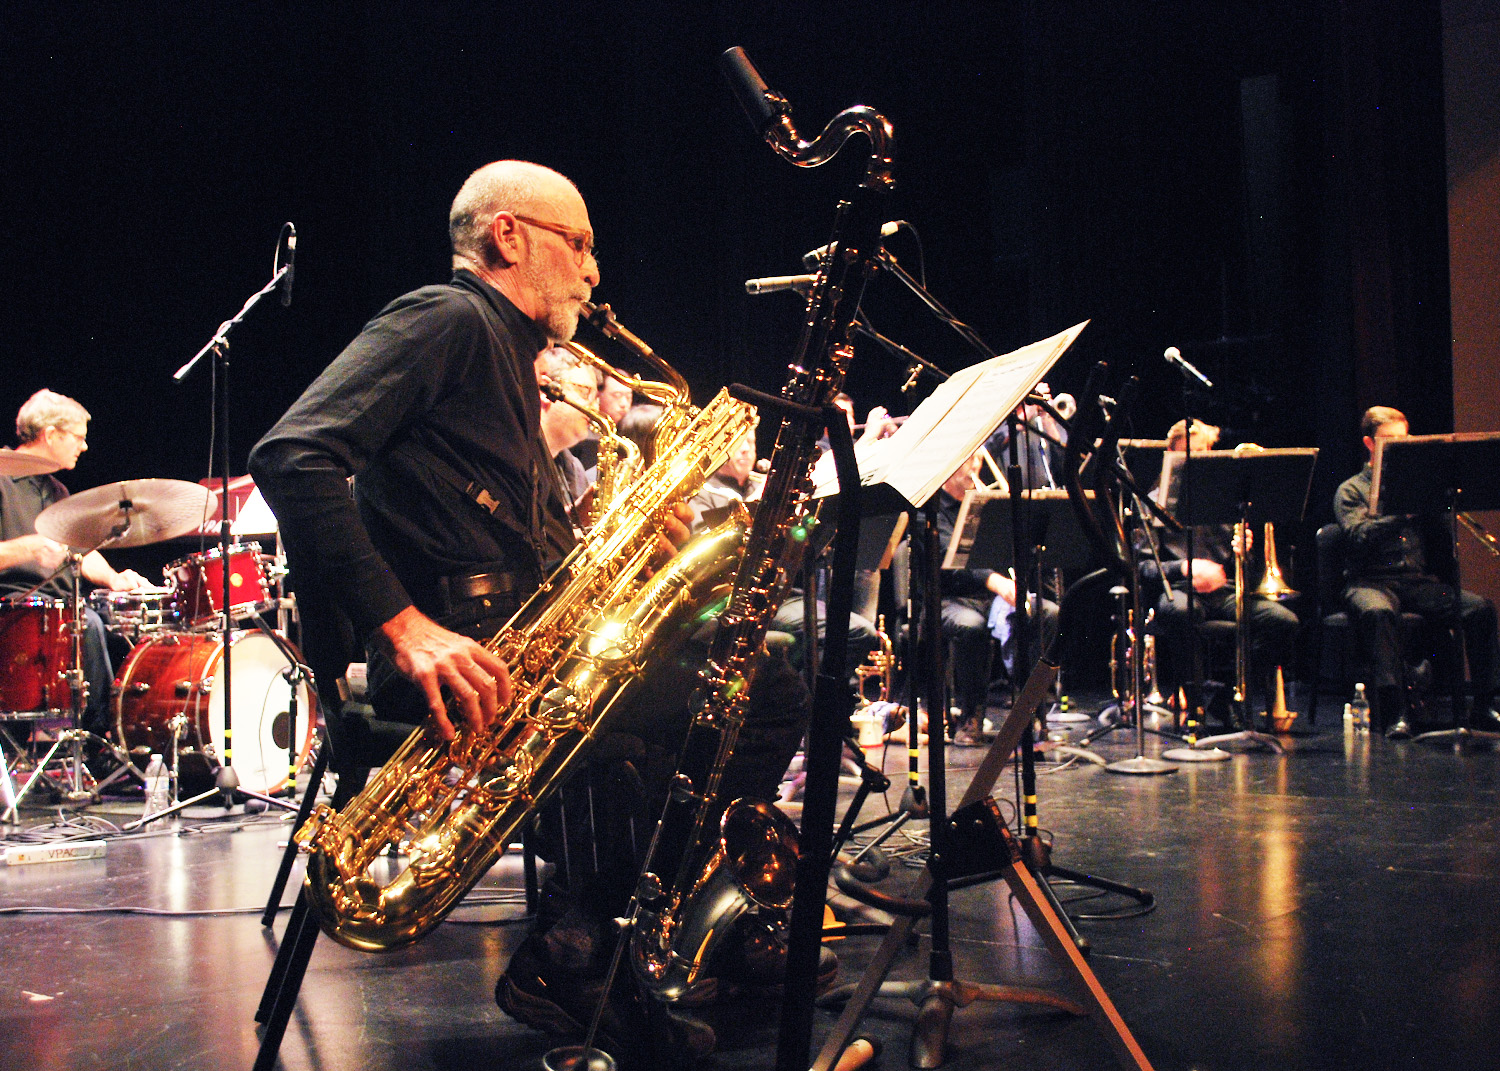 Barry saxophone player and Daddios Big Band member plays some jazzy tunes at the De Anza Jazz Ensemble Concert on March 23.